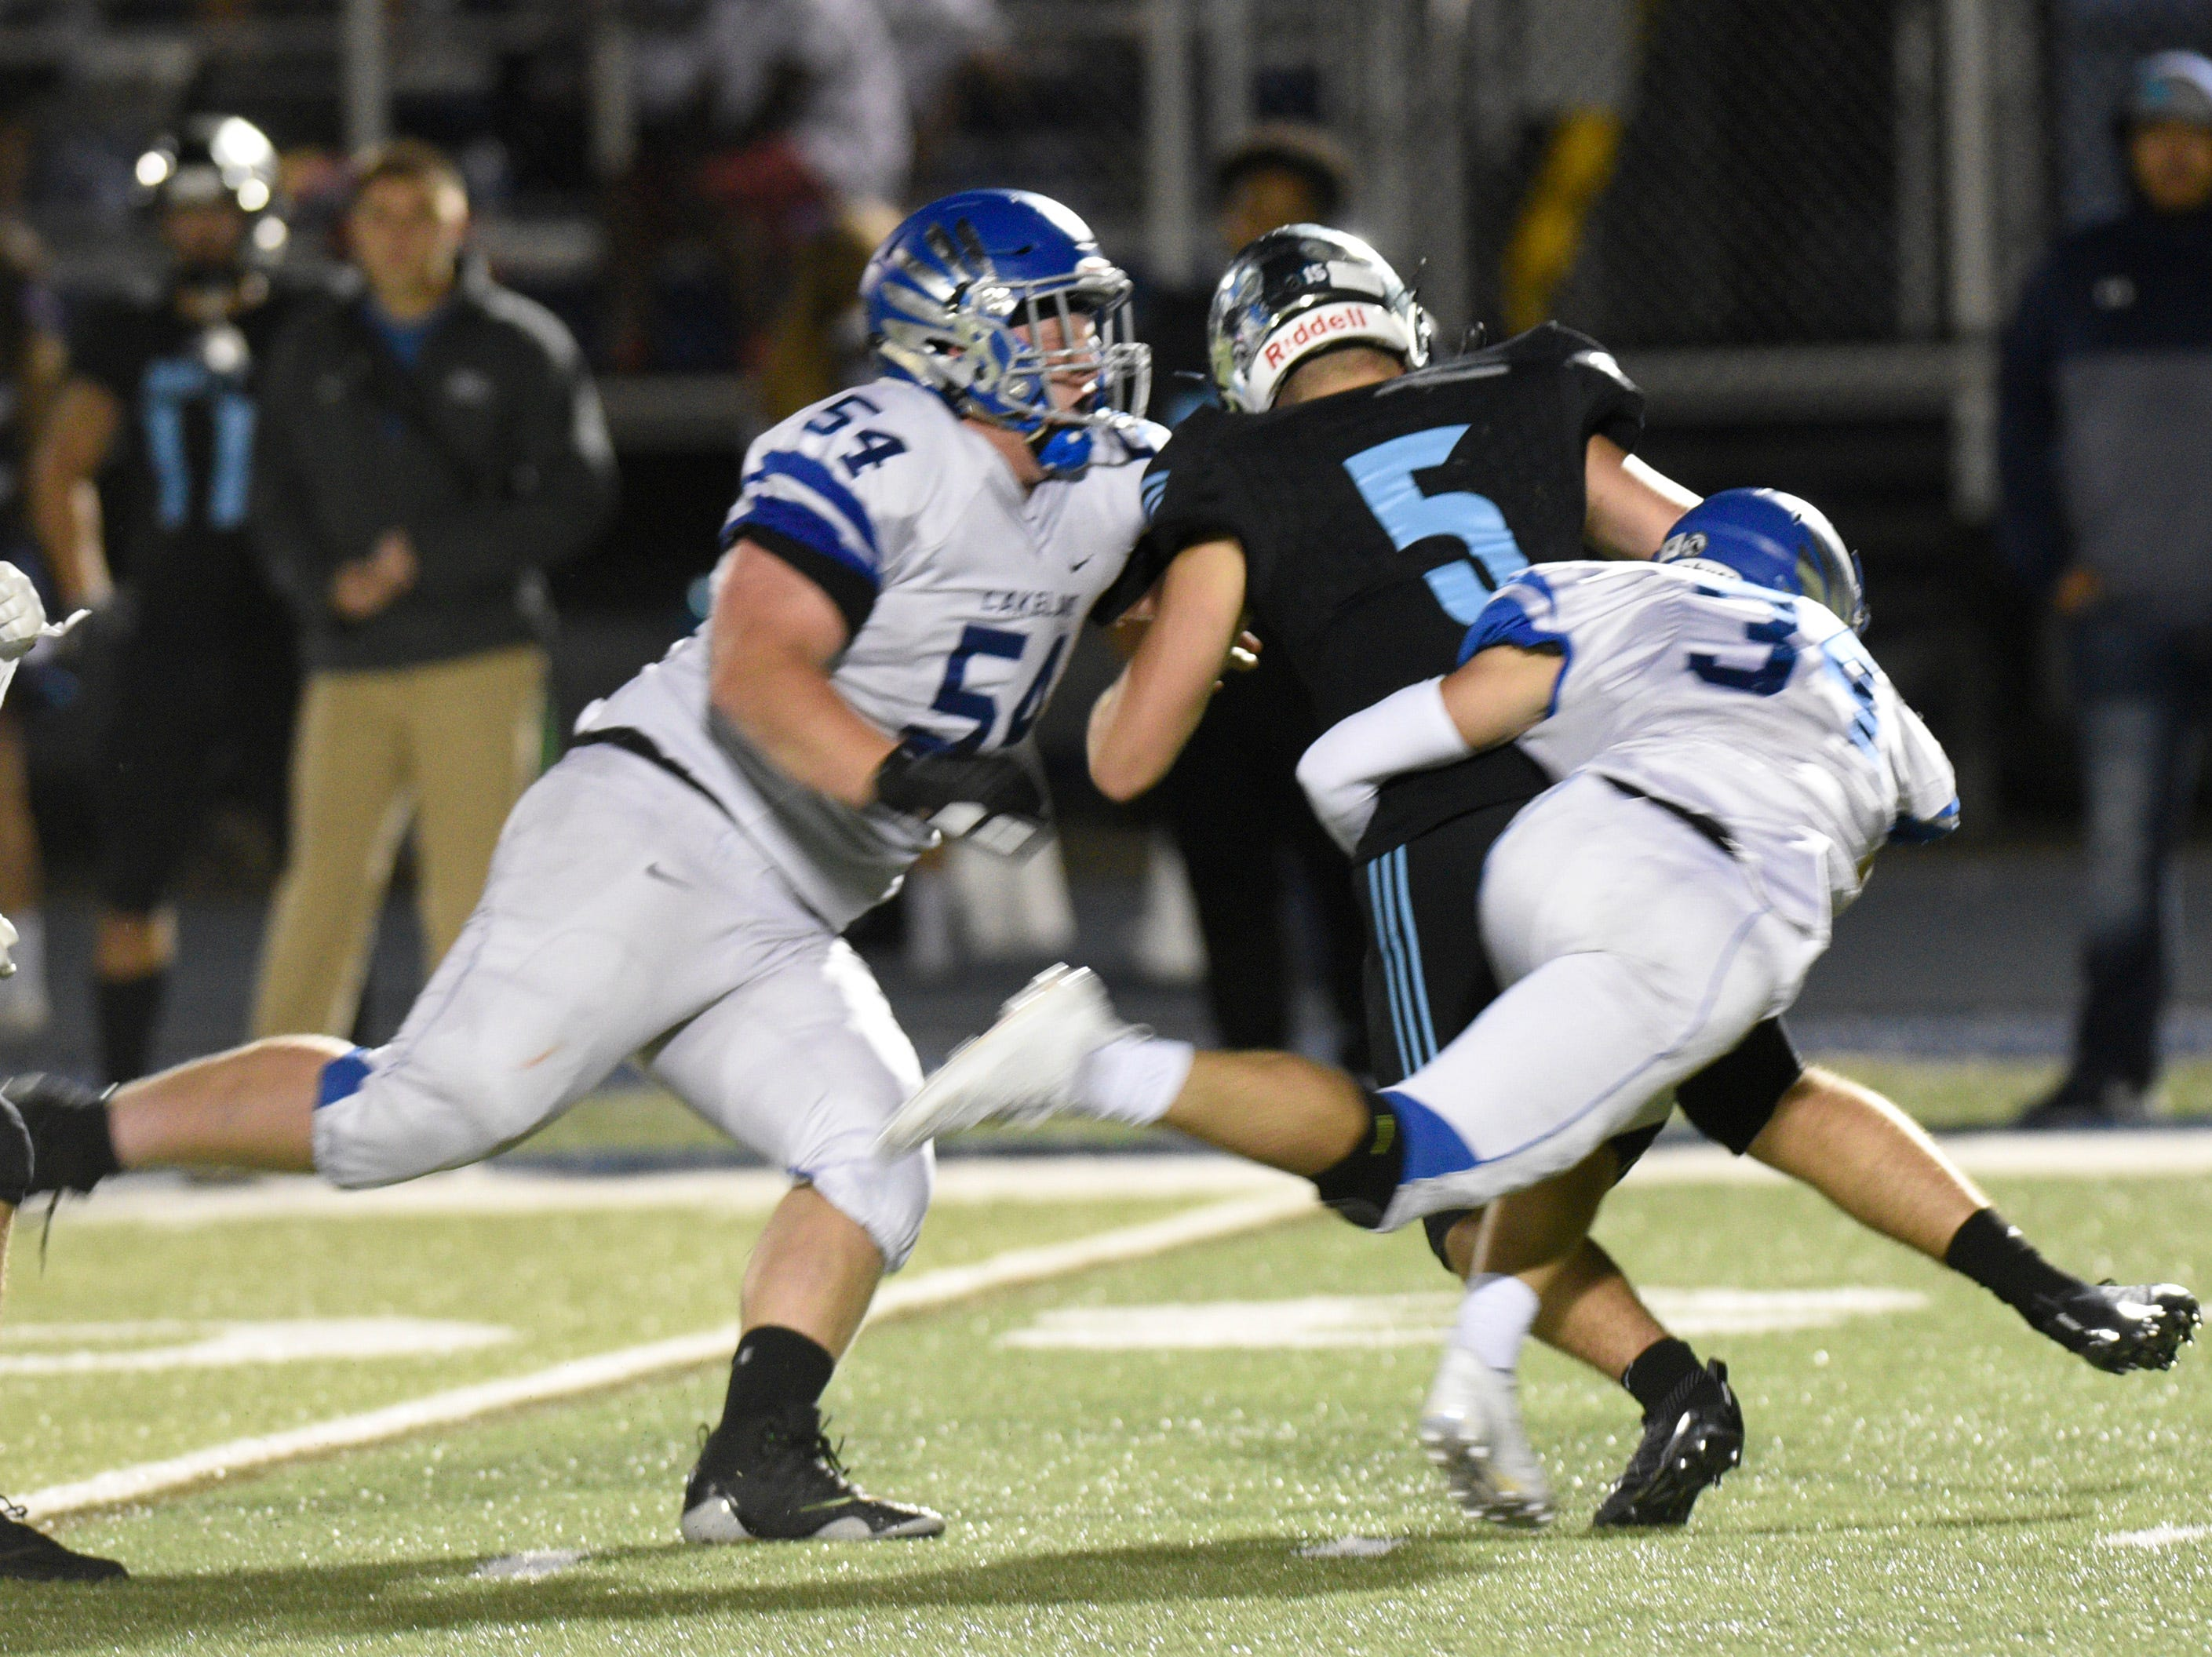 Lakeland players Ben Roberts (54) and Matt Fus sack Waterford Mott QB Matthew Castillo Jr.